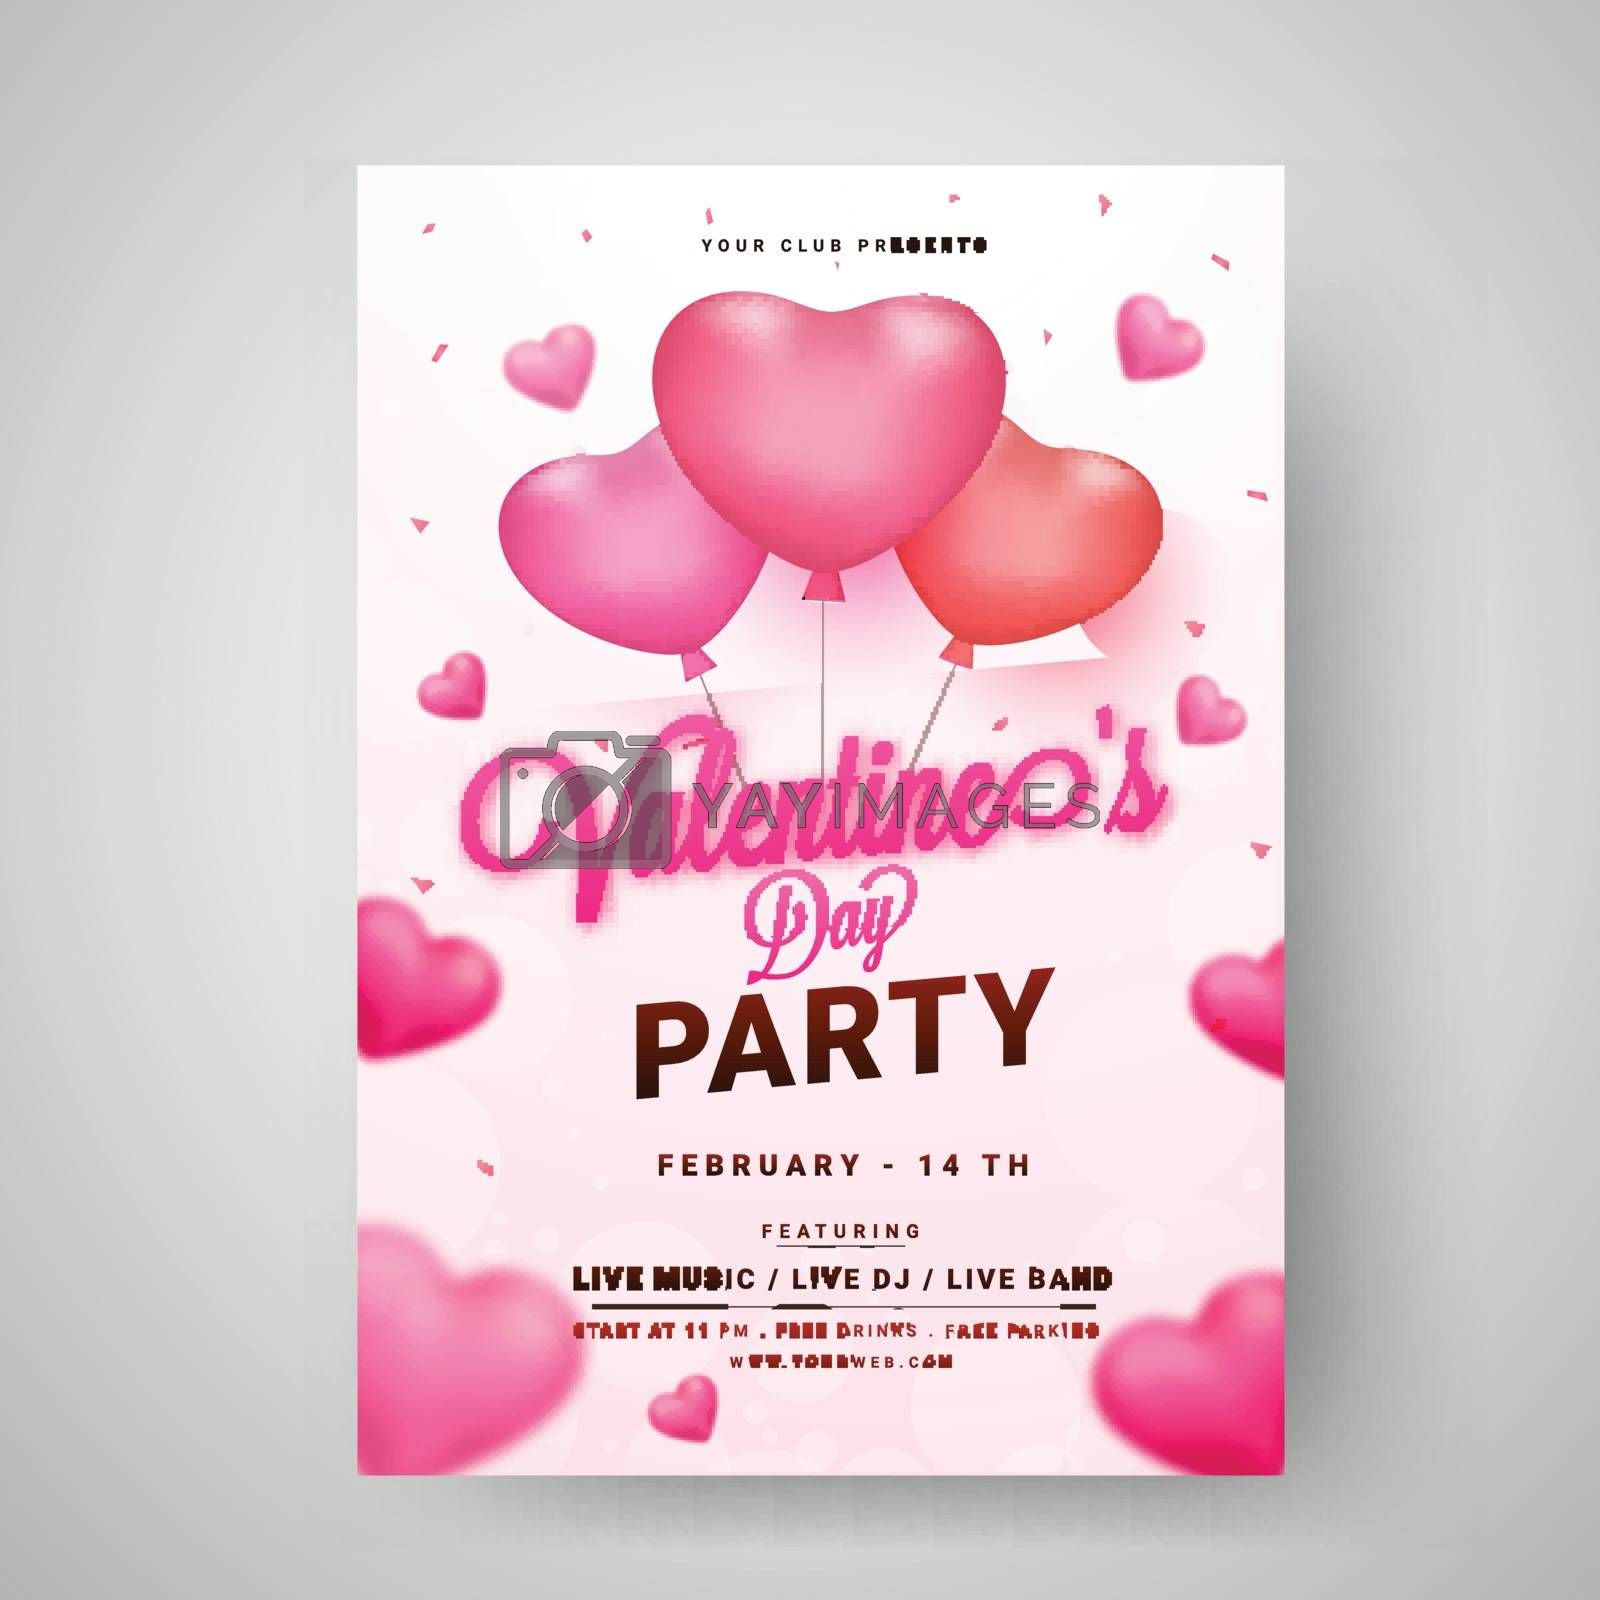 Valentine's Day party template or flyer design decorated with gl by aispl